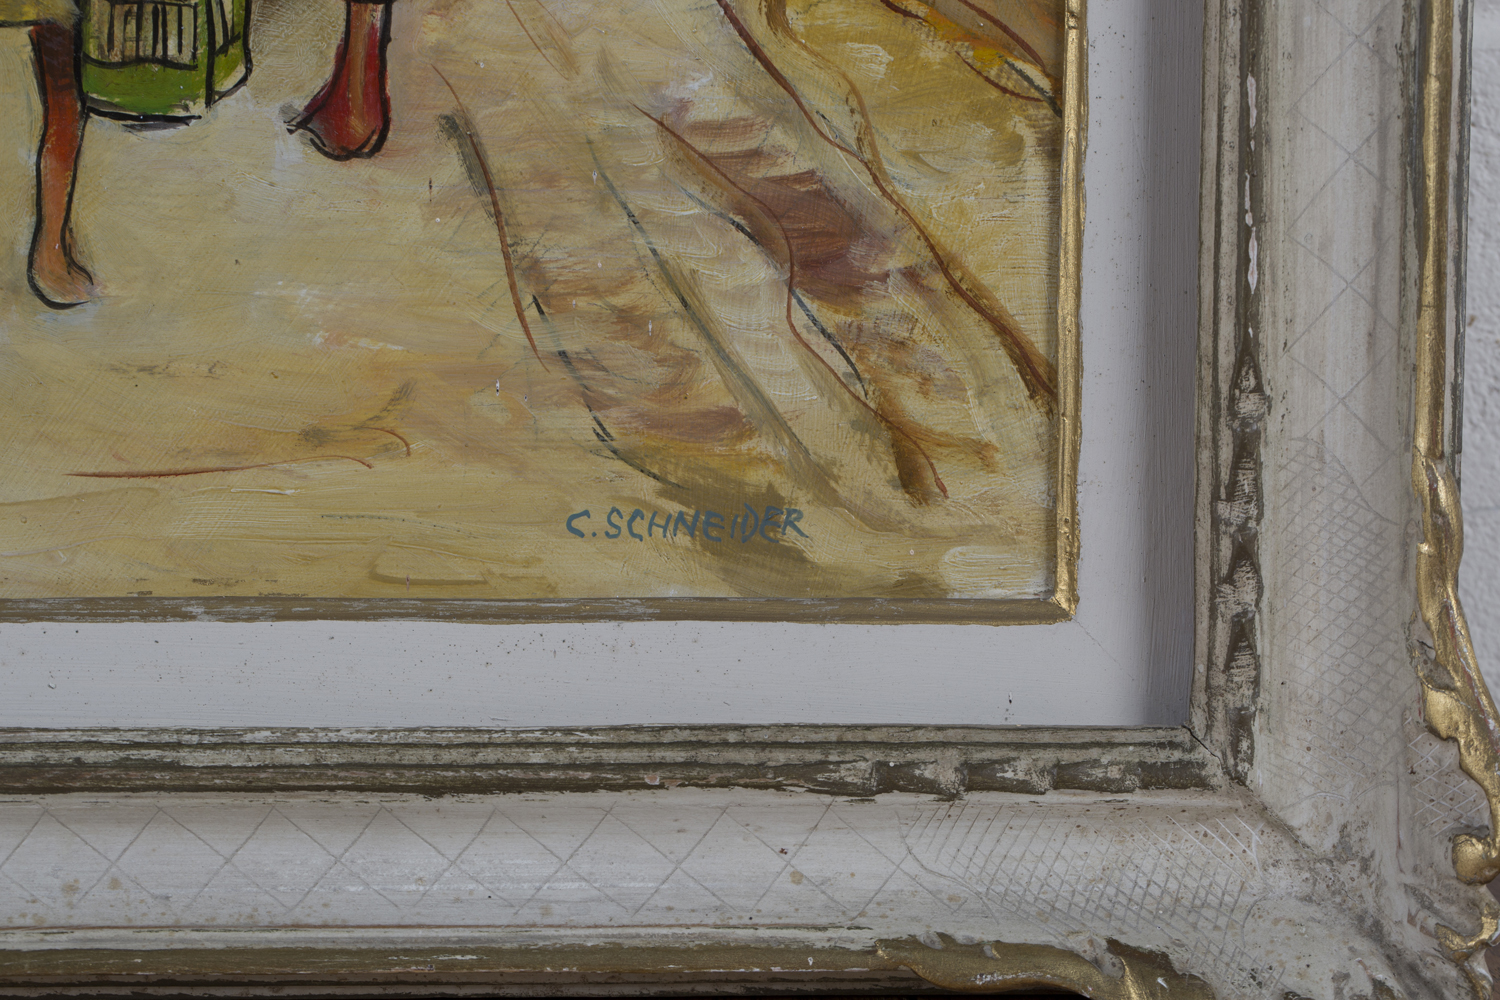 Lot 2 - Charles Schneider - 'Zingari' (Caravan and Figures on a Country Road), oil on board, signed recto,